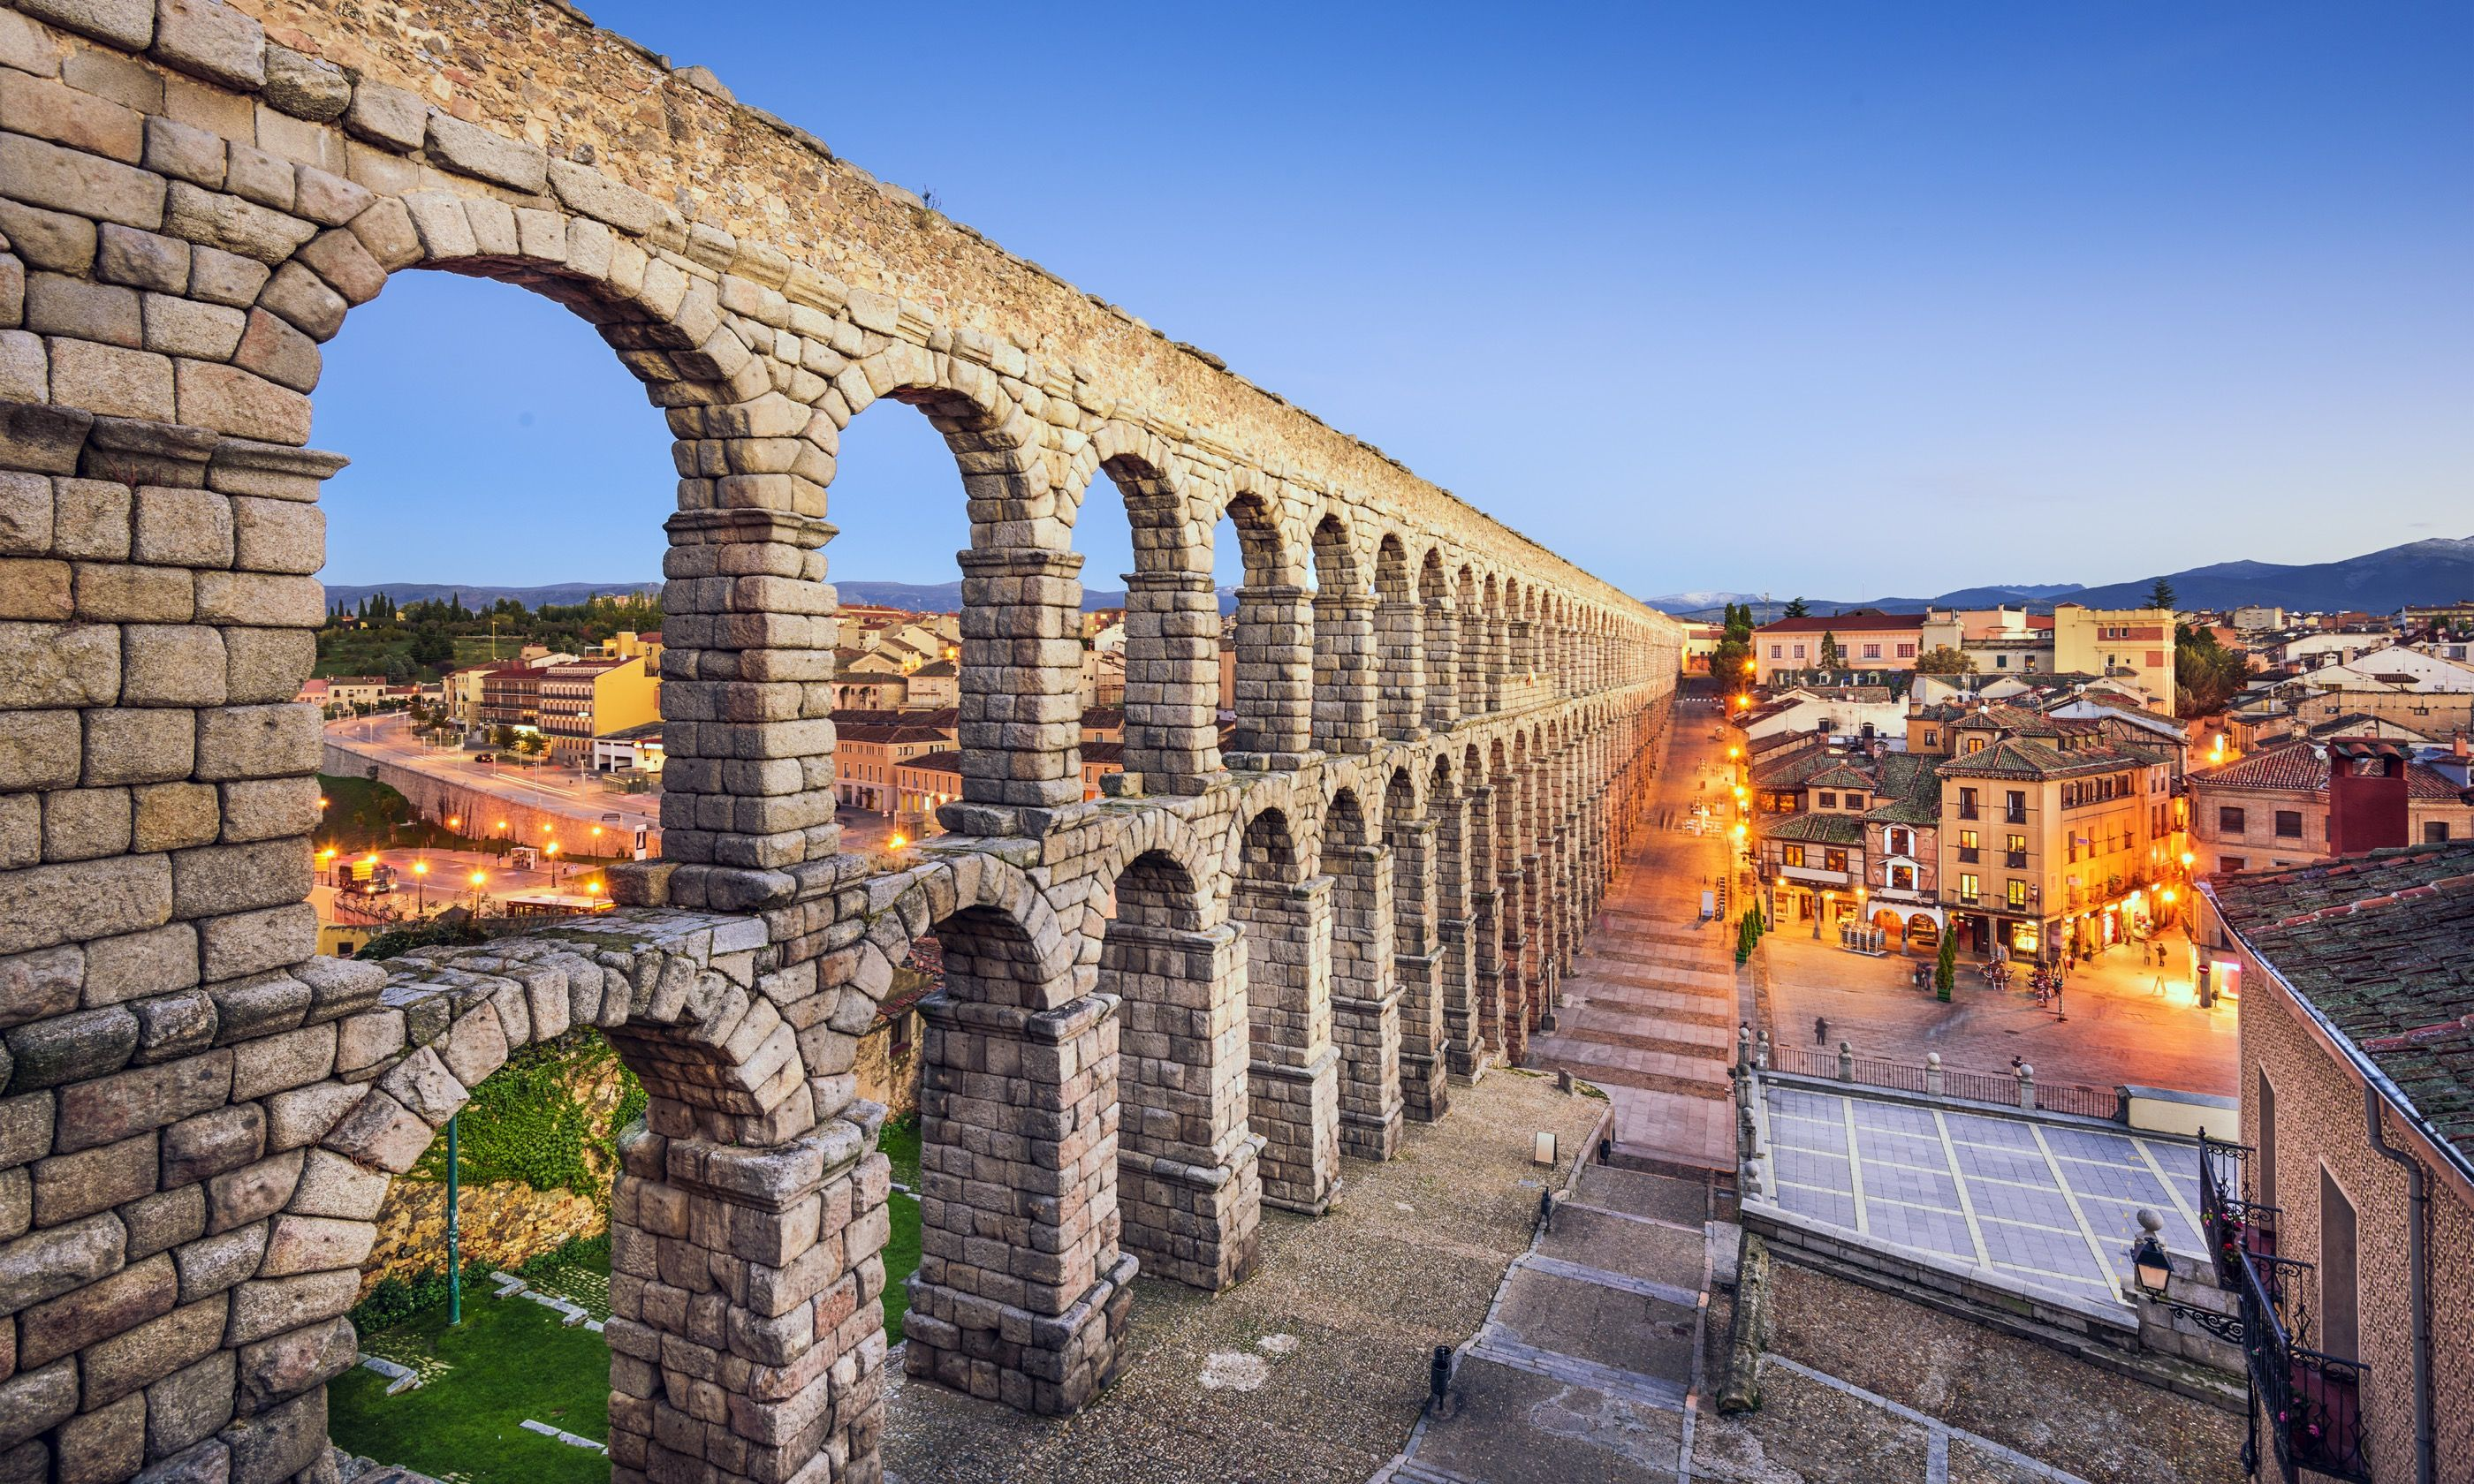 Aqueduct of Segovia at sunset (Dreamstime)